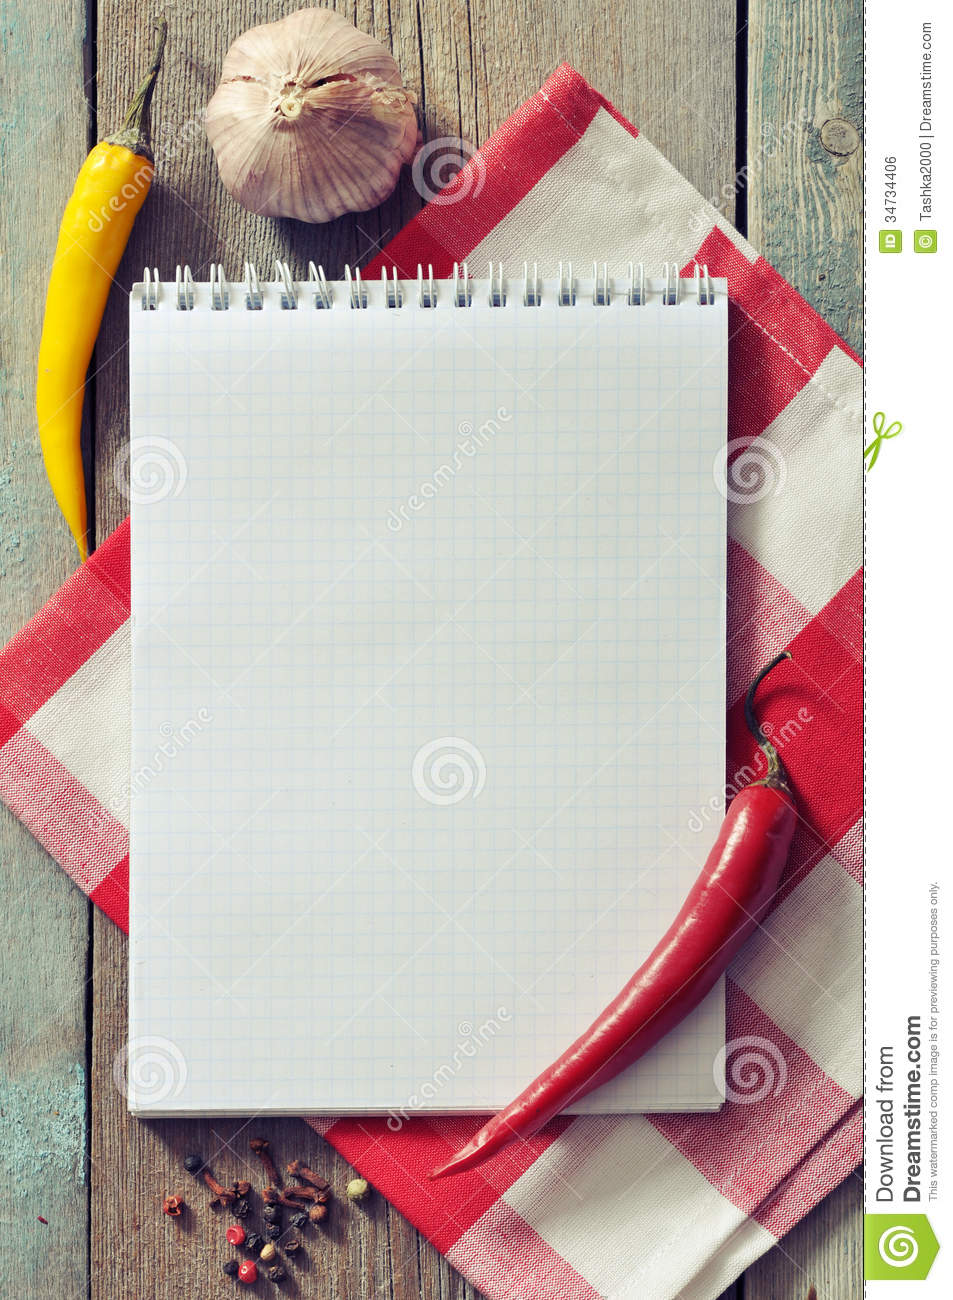 Blank Recipe Book Royalty Free Stock Image - Image: 34734406